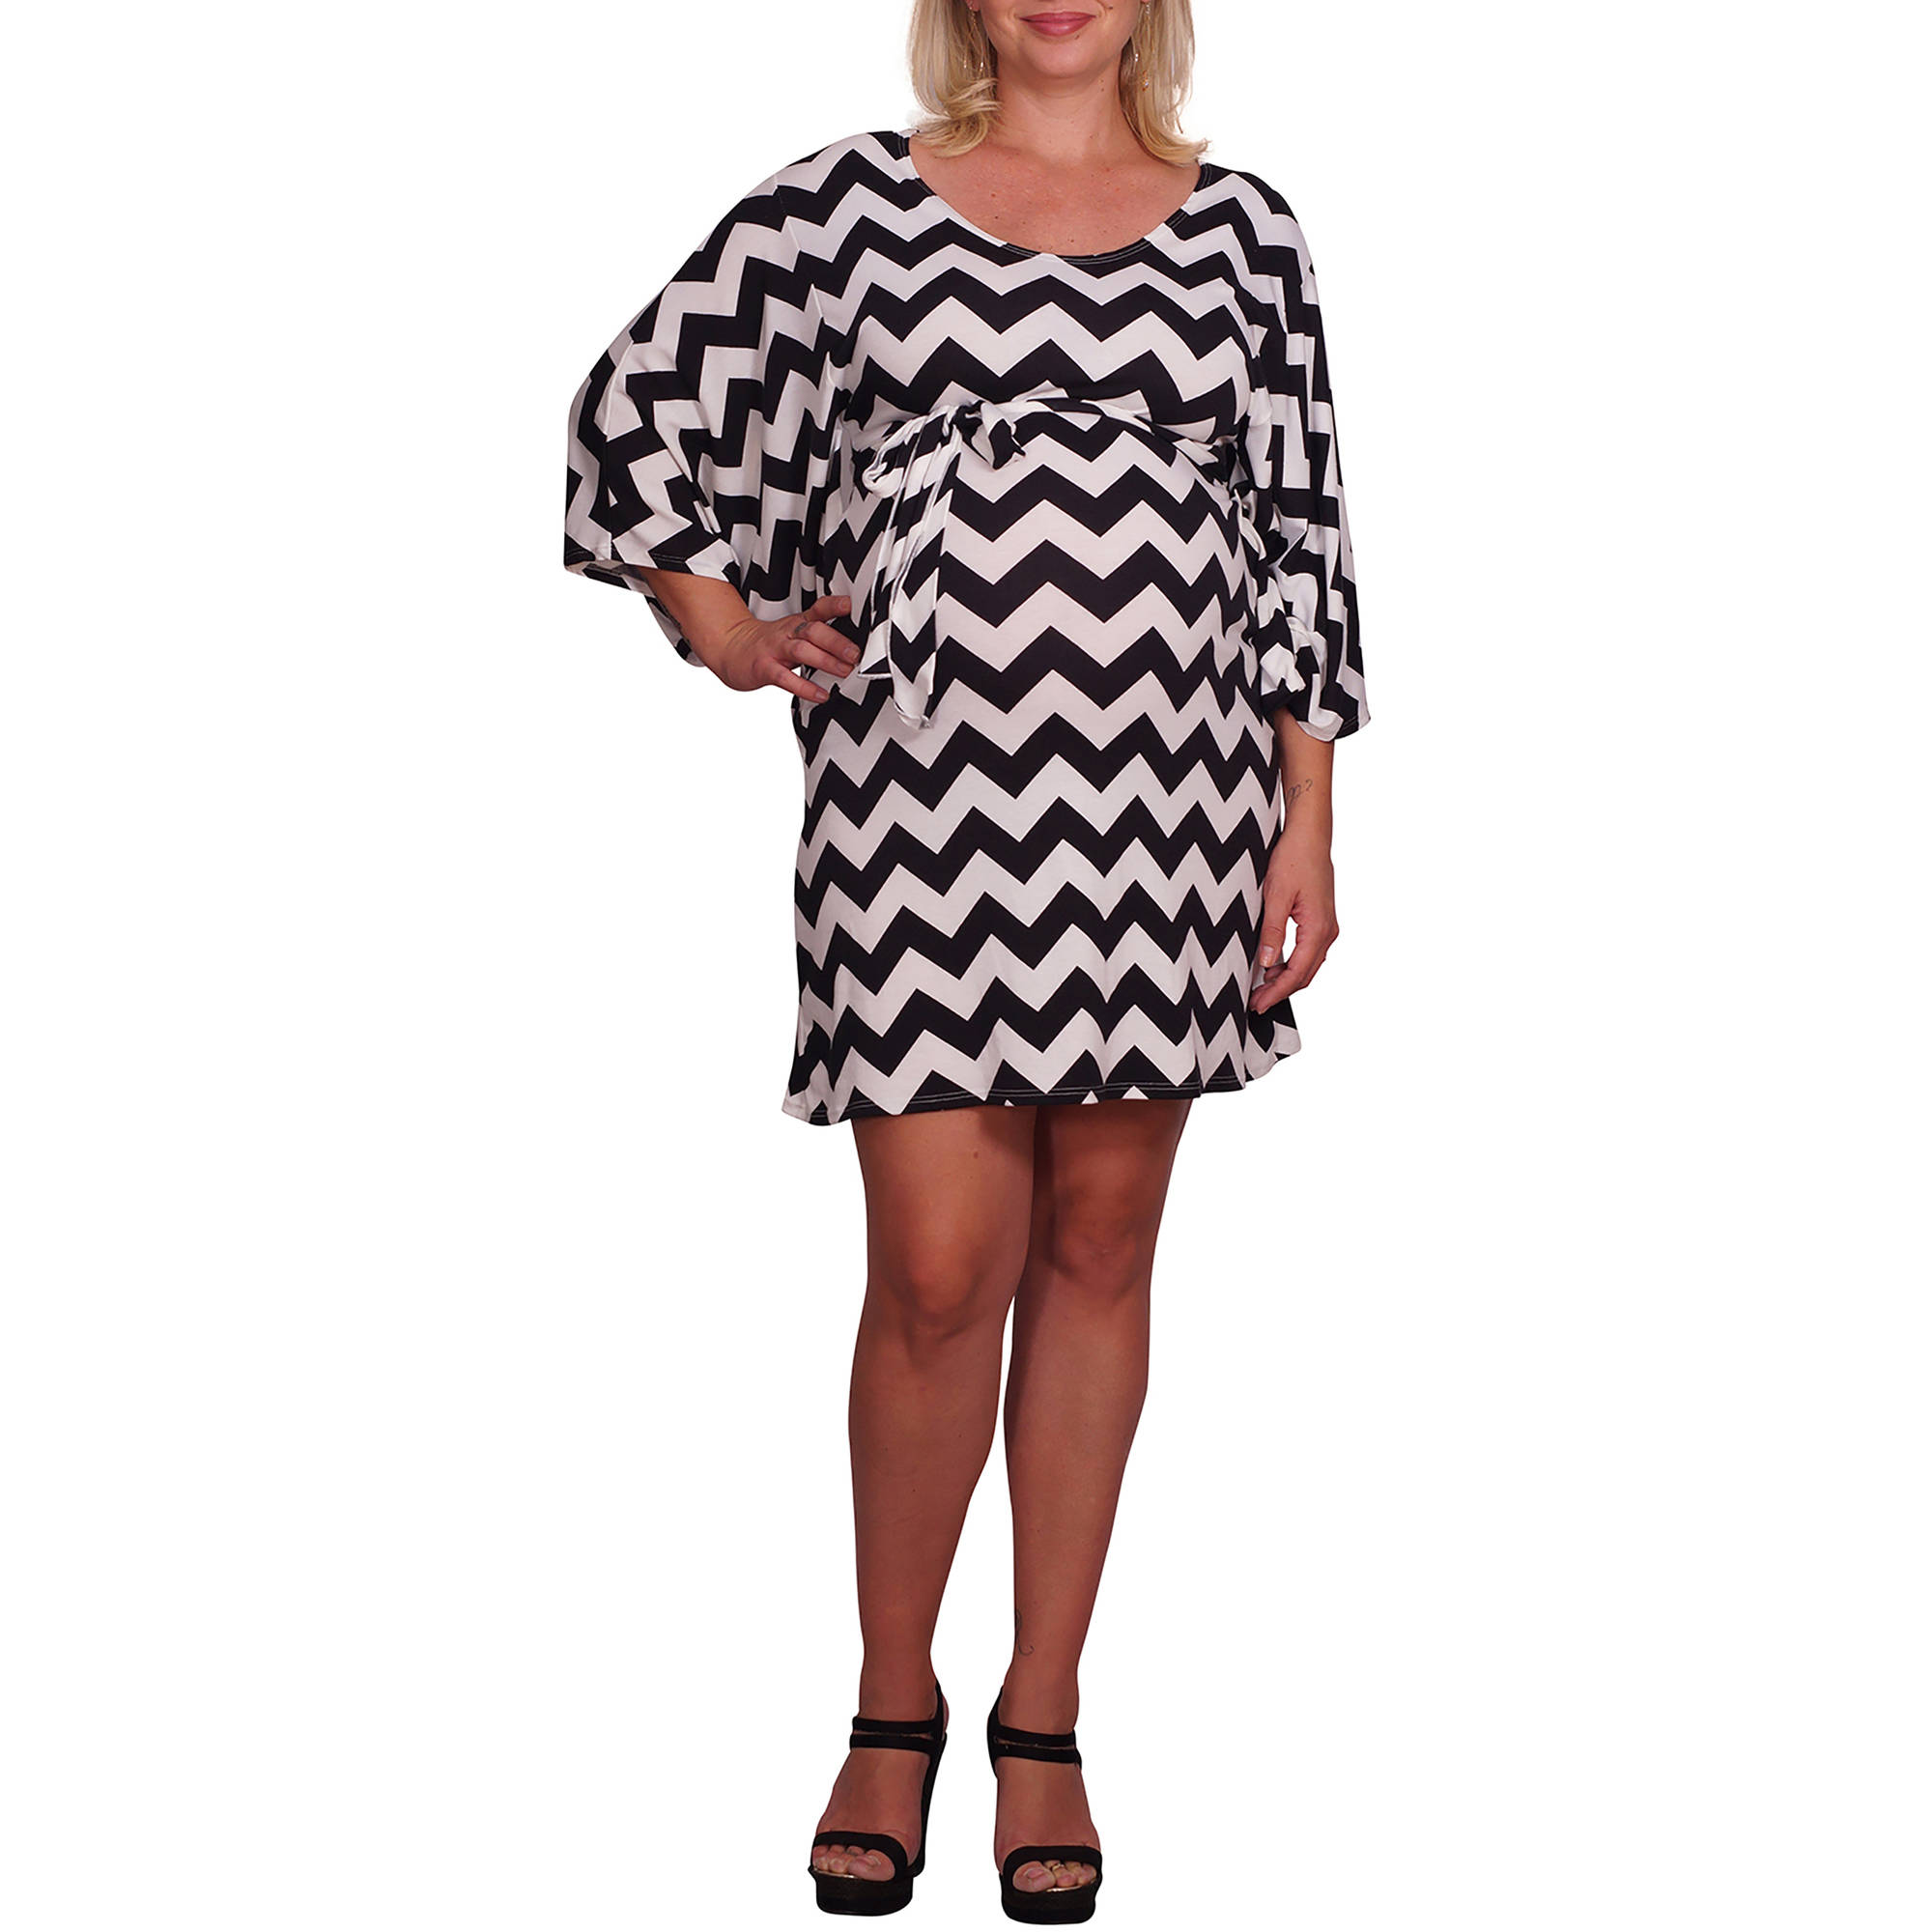 Mommylicious Maternity Belted Chevron Print Plus Maternity Dress